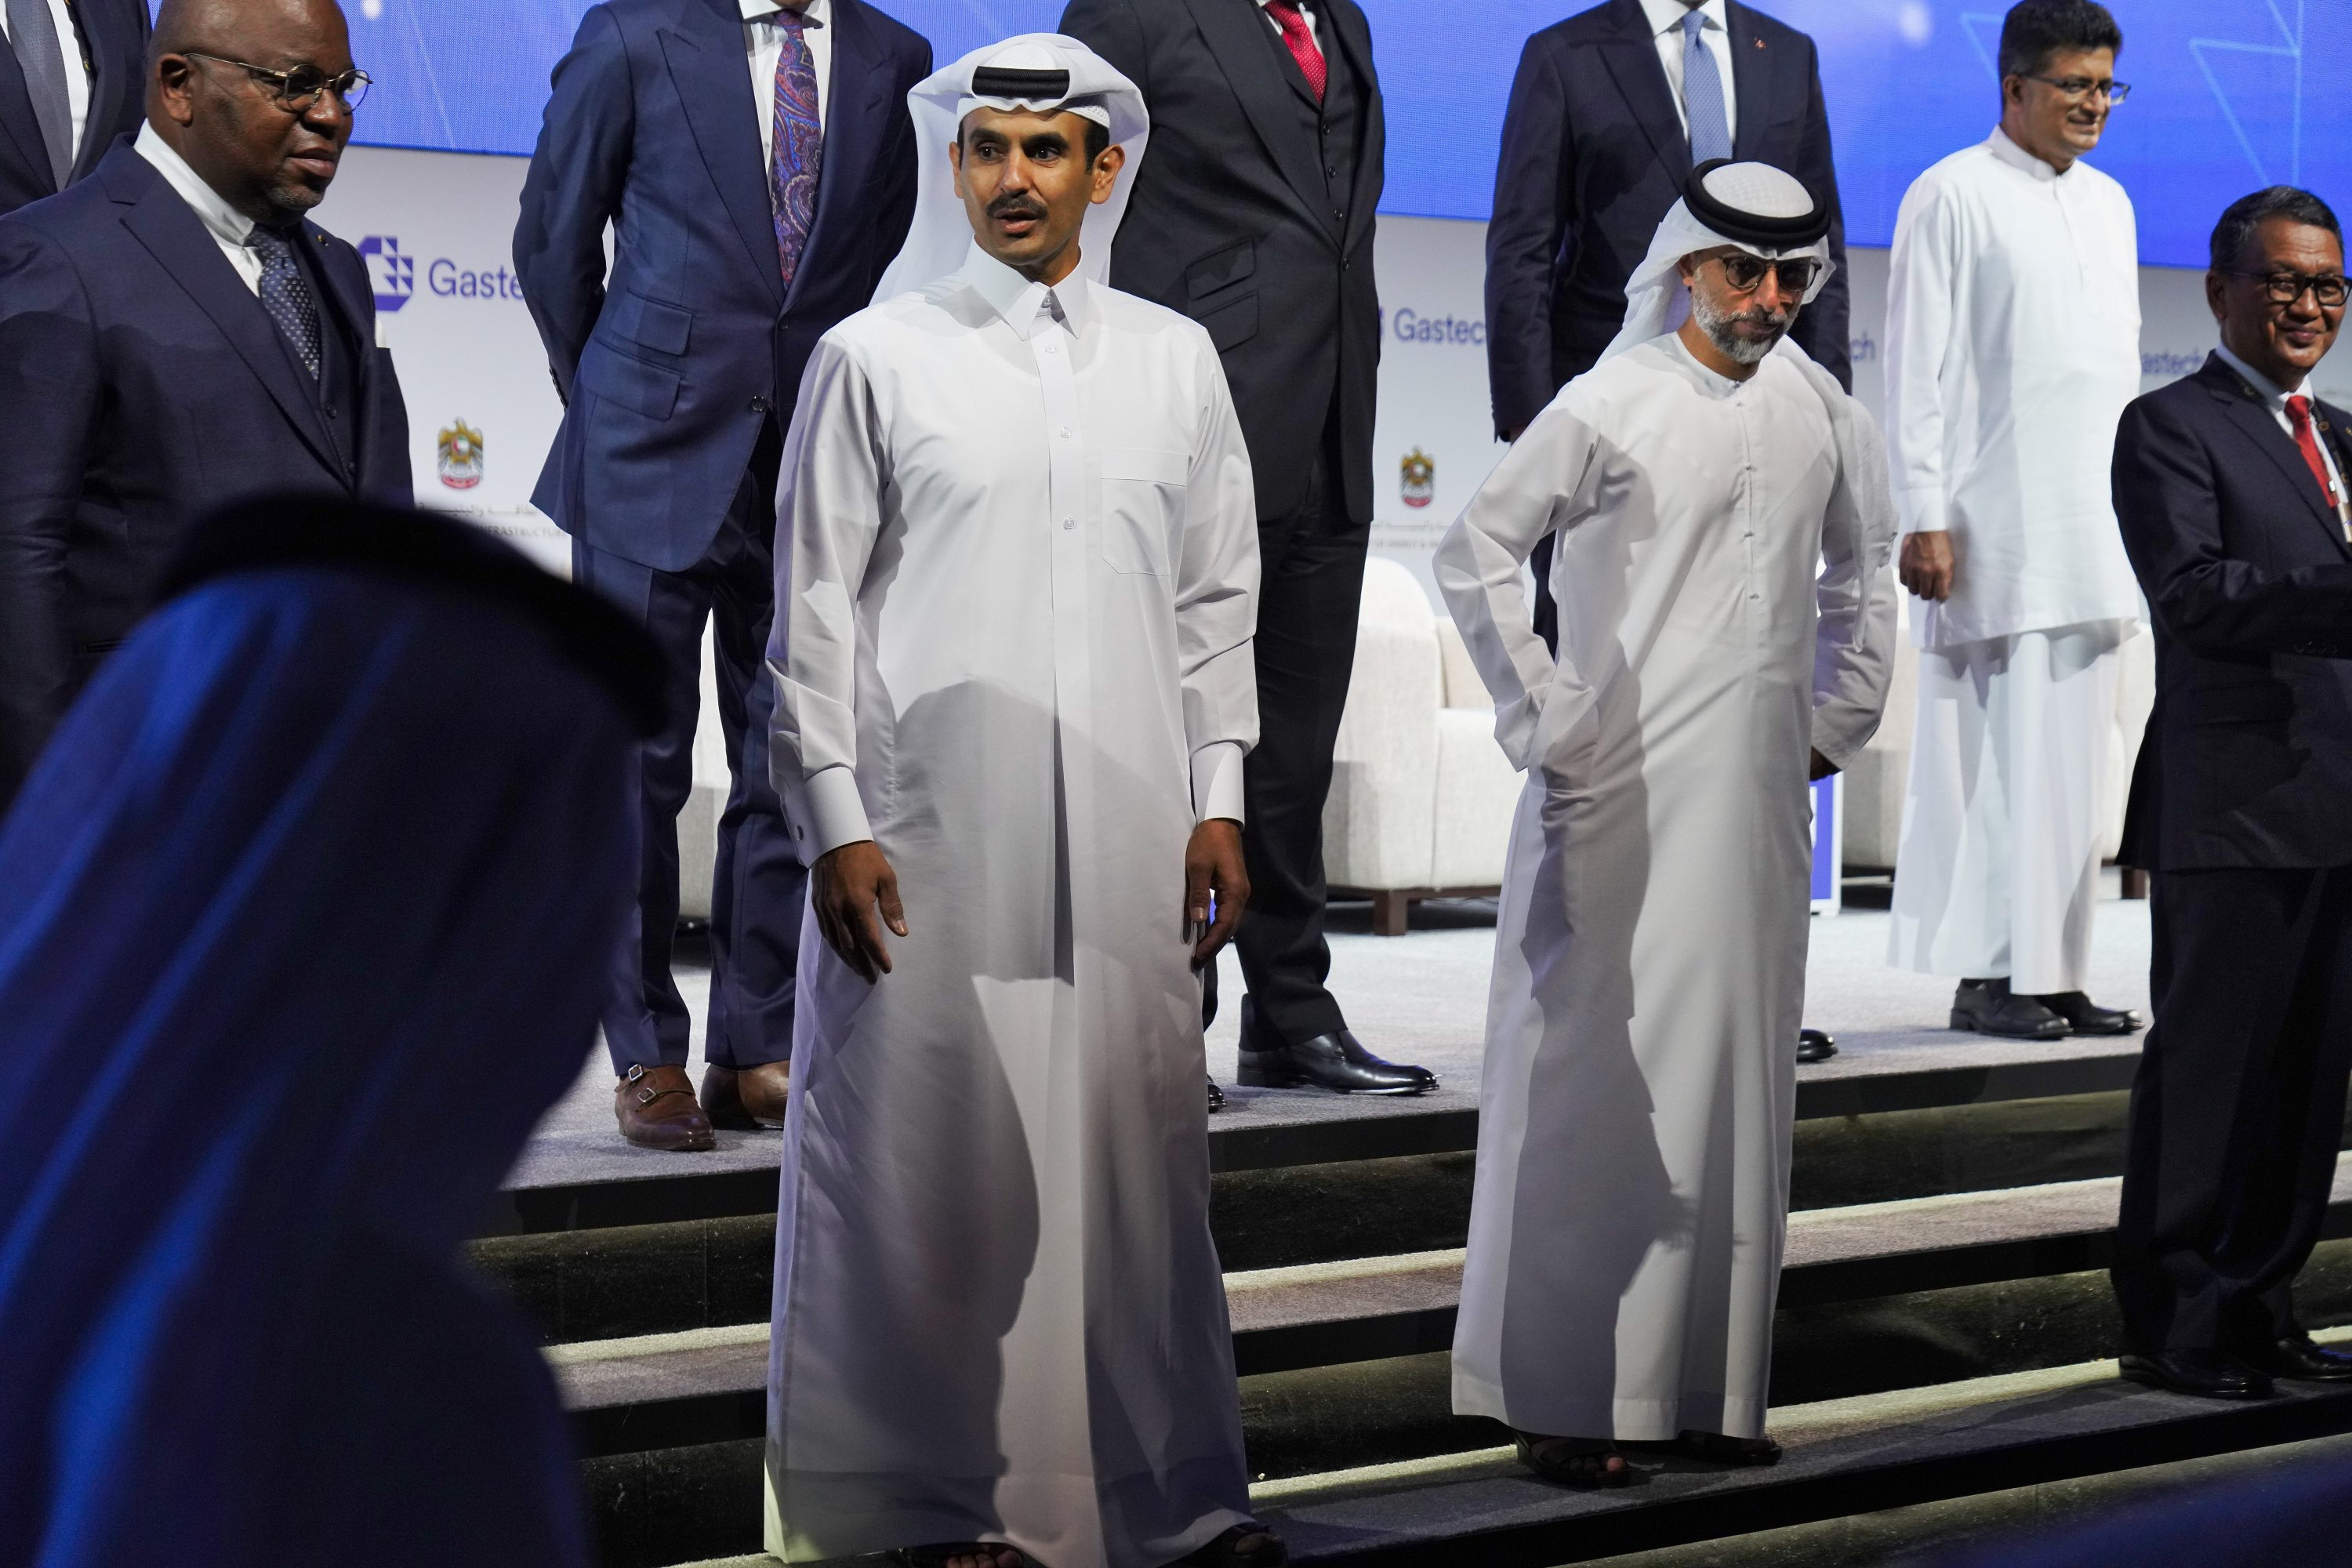 Qatar's Minister of State for Energy Affairs Saad Sherida al-Kaabi (CL), awaits a posed portrait with Emirati Energy and Infrastructure Minister Suhail al-Mazrouei (CR) during Gastech 2021 conference in Dubai, United Arab Emirates, Sept. 21, 2021. (AP Photo)